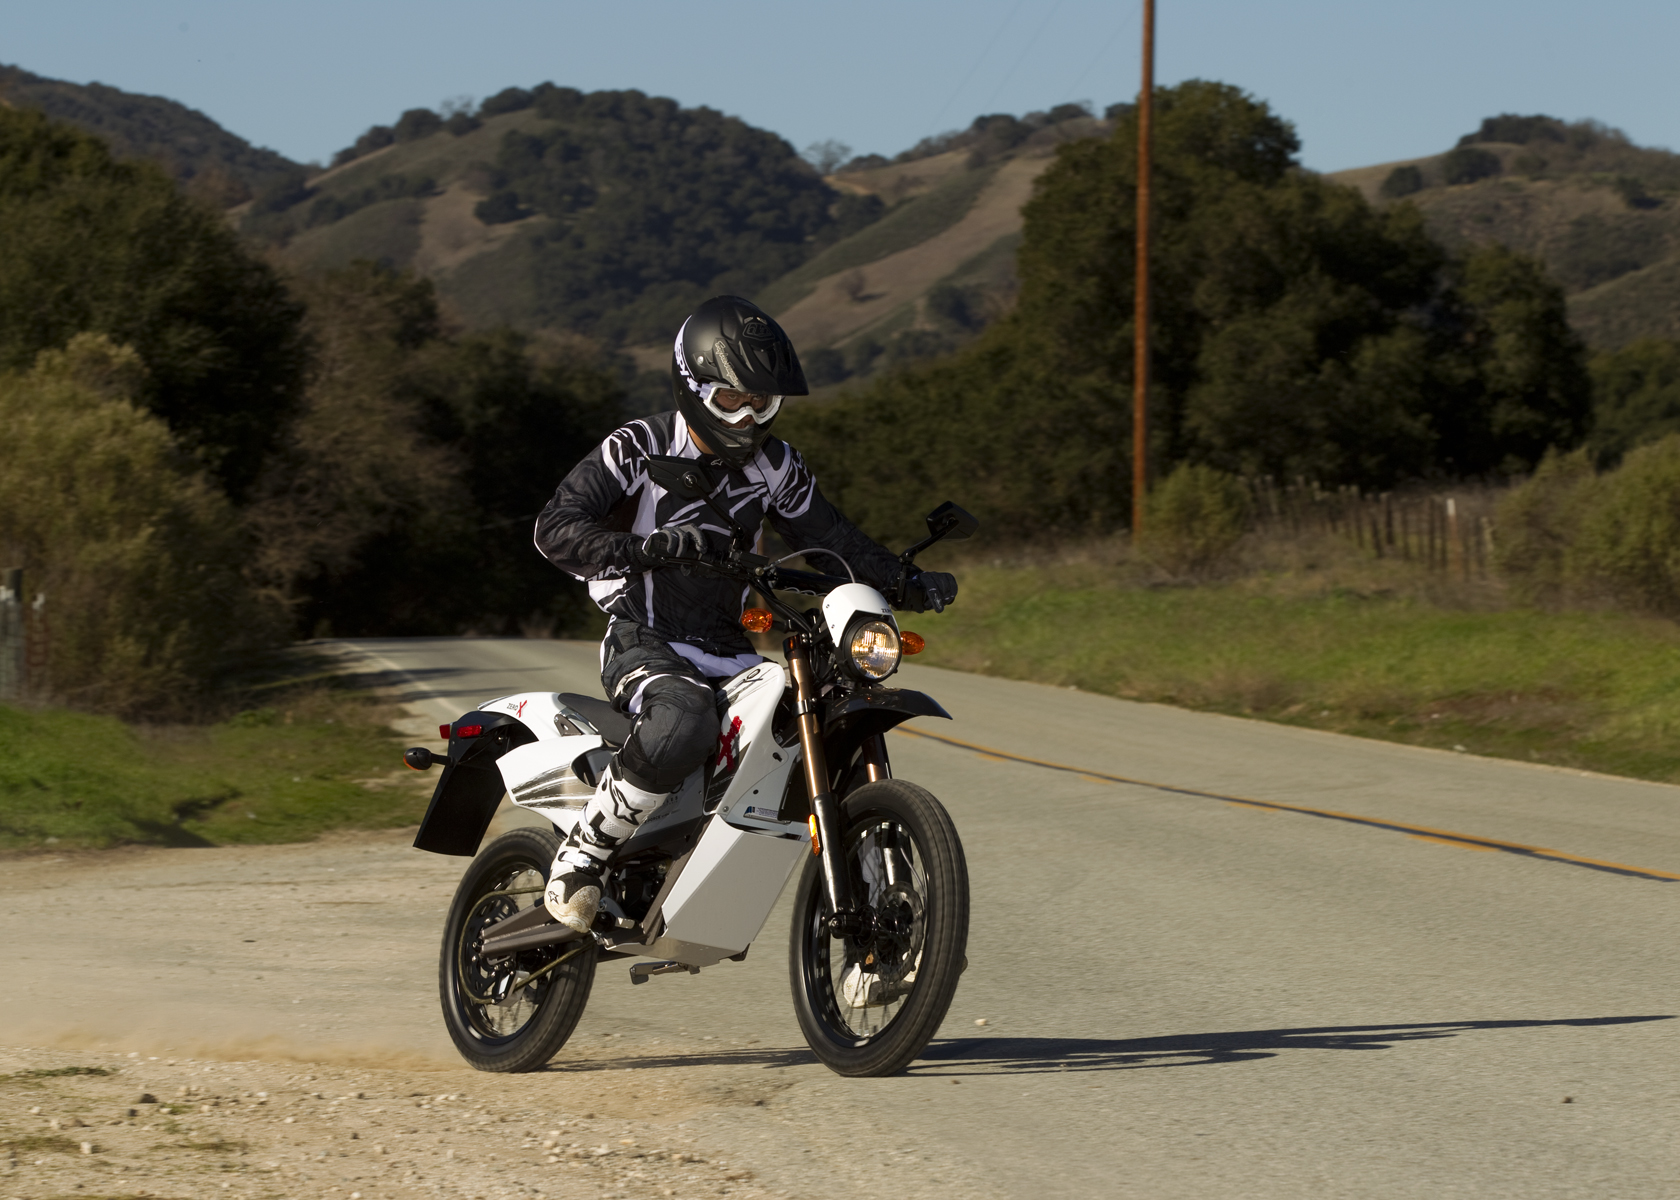 '.2011 Zero X Electric Motorcycle: Back to the Highway.'